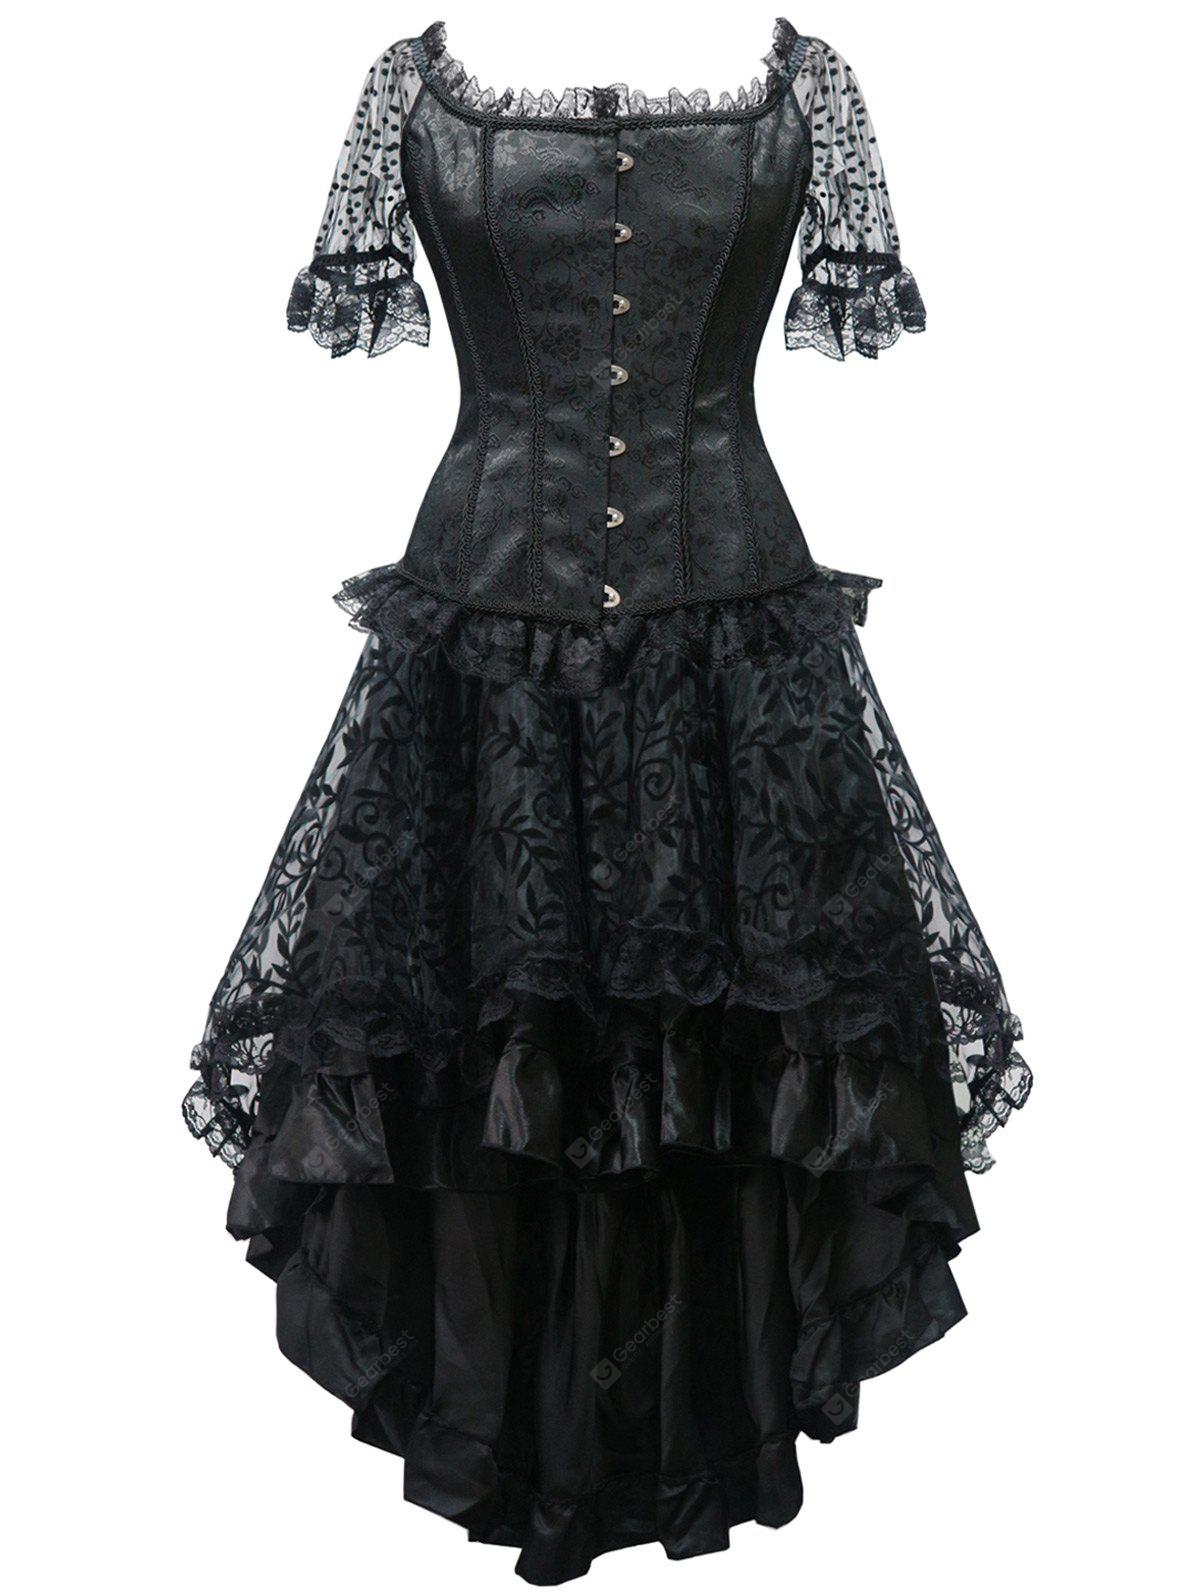 Lace Panel Steel Boned Corset Party Dress